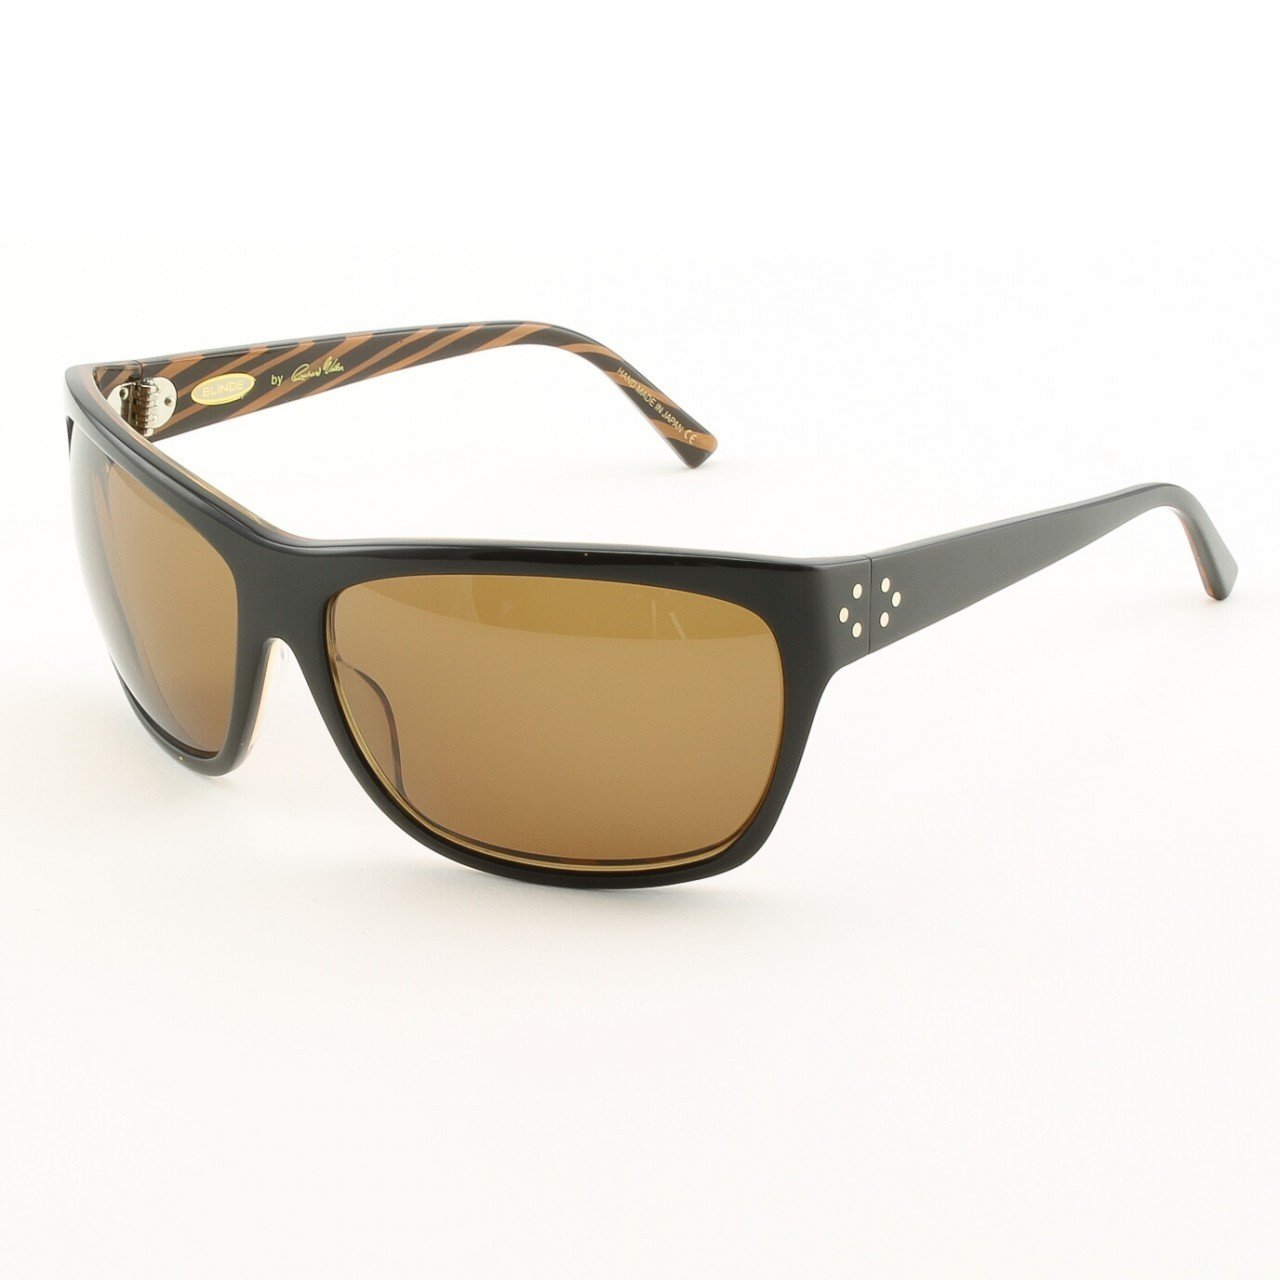 Blinde I Want Candy Women's Sunglasses Col. Brown Zebra with Brown Lenses